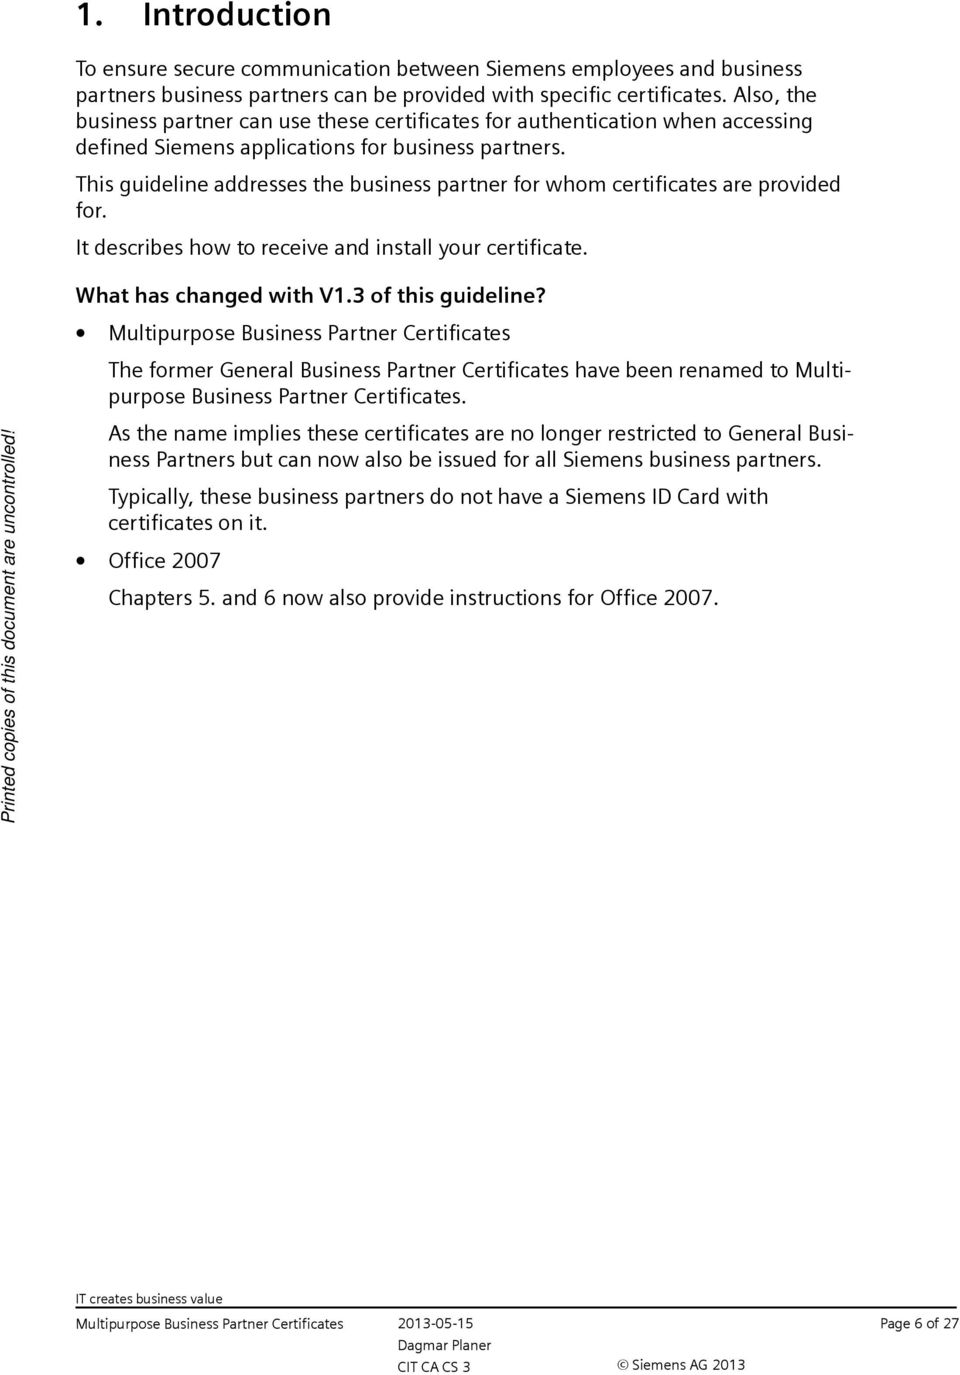 This guideline addresses the business partner for whom certificates are provided for. It describes how to receive and install your certificate. What has changed with V1.3 of this guideline?